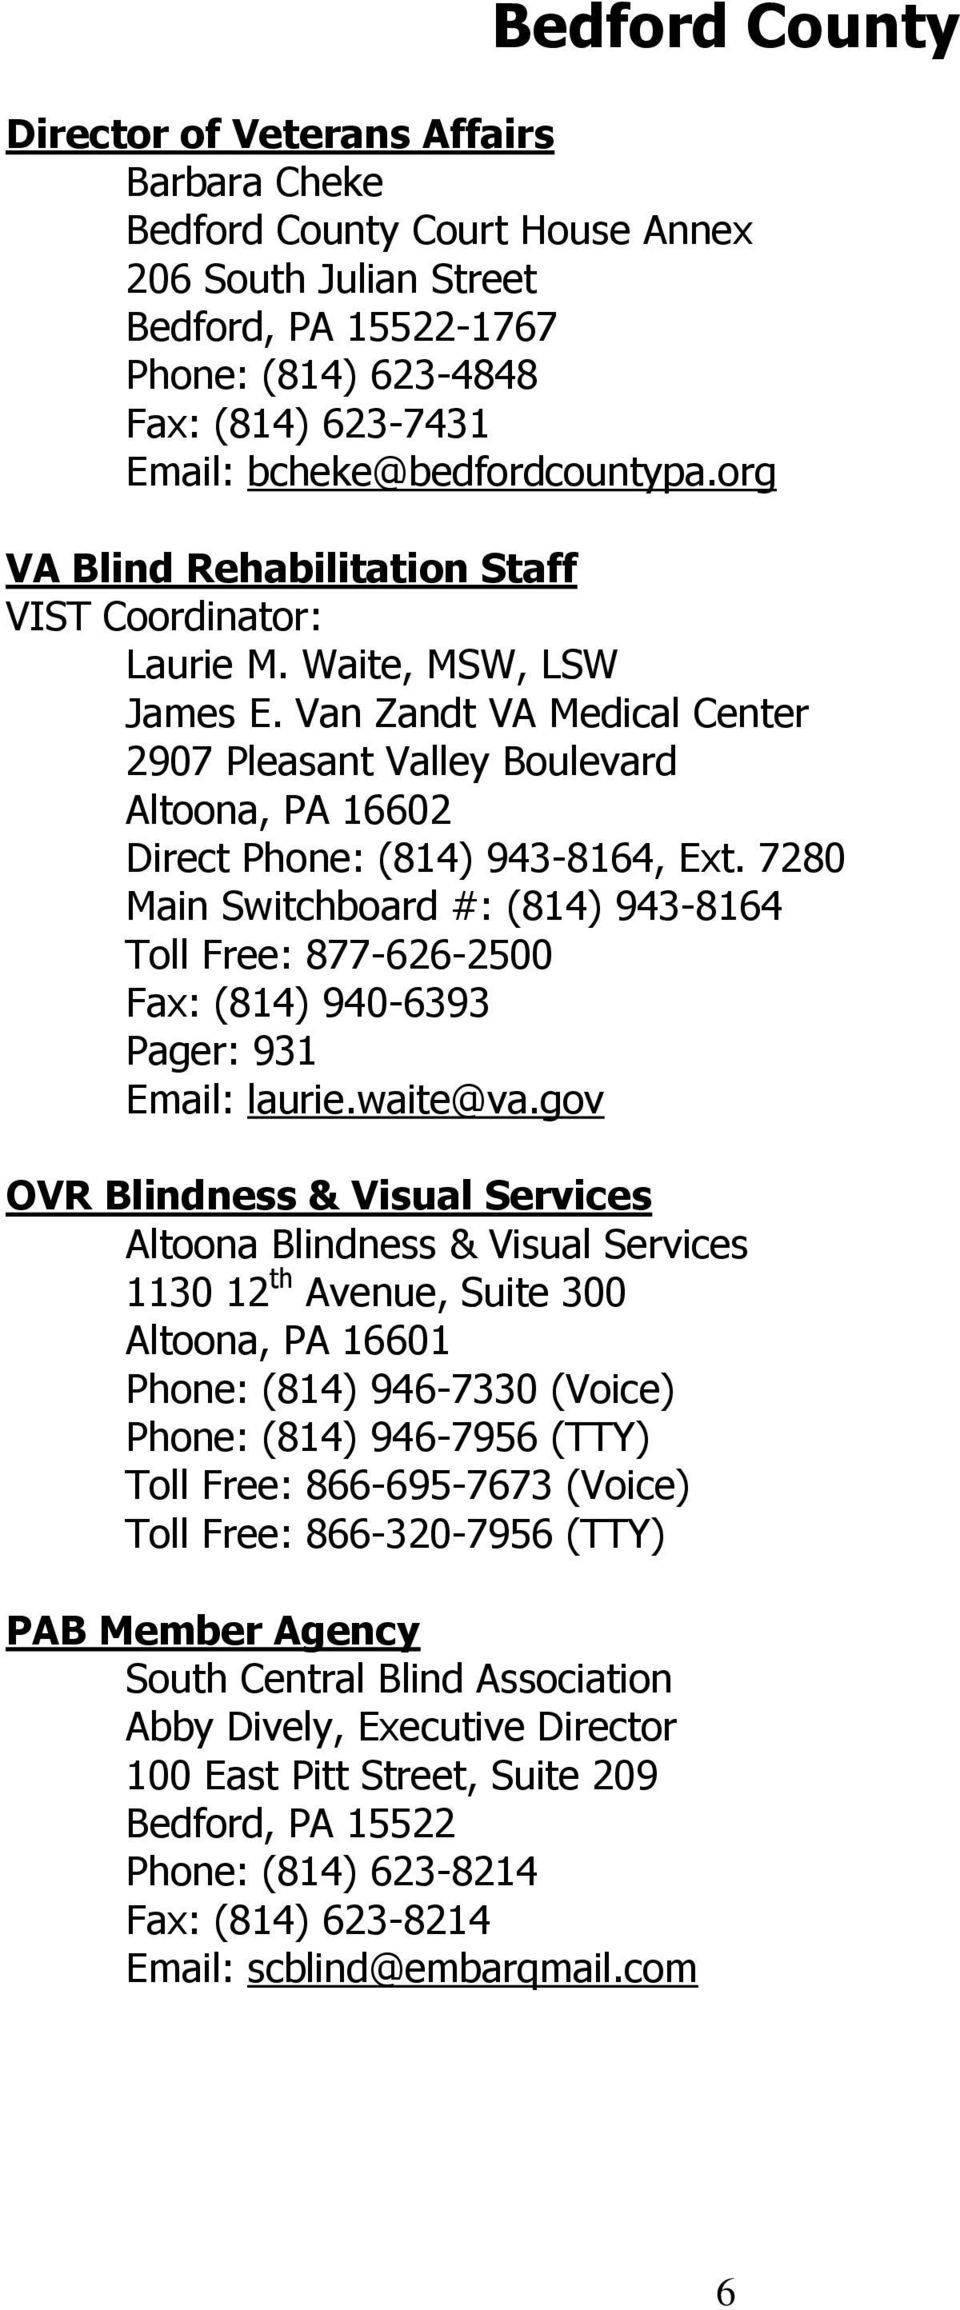 7280 Main Switchboard #: (814) 943-8164 Toll Free: 877-626-2500 Fax: (814) 940-6393 Pager: 931 Email: laurie.waite@va.